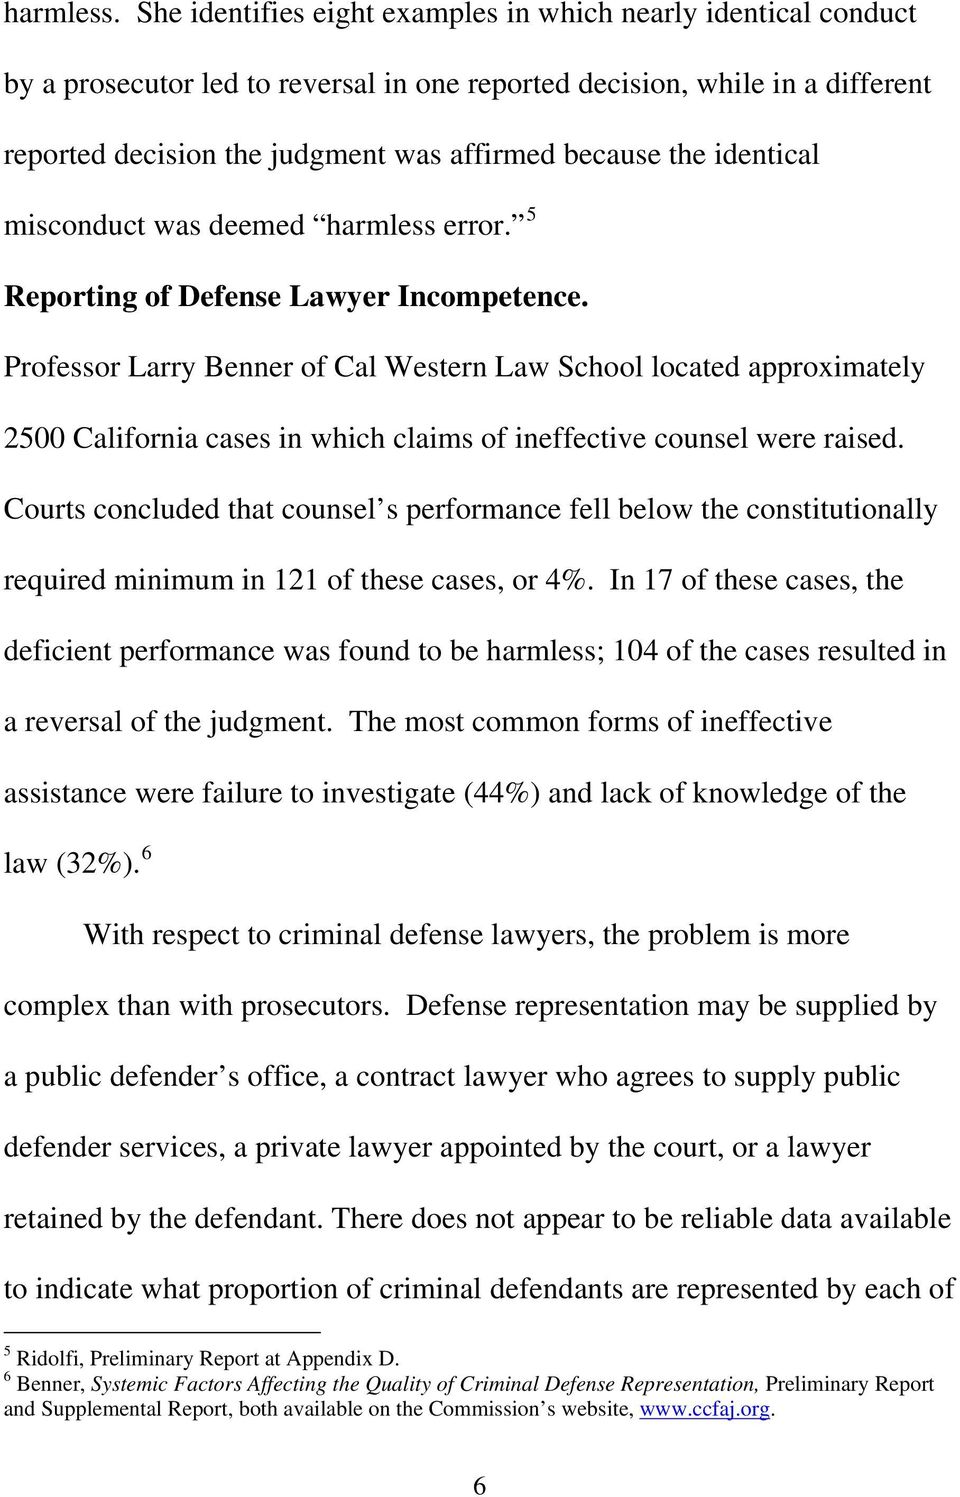 identical misconduct was deemed harmless error. 5 Reporting of Defense Lawyer Incompetence.